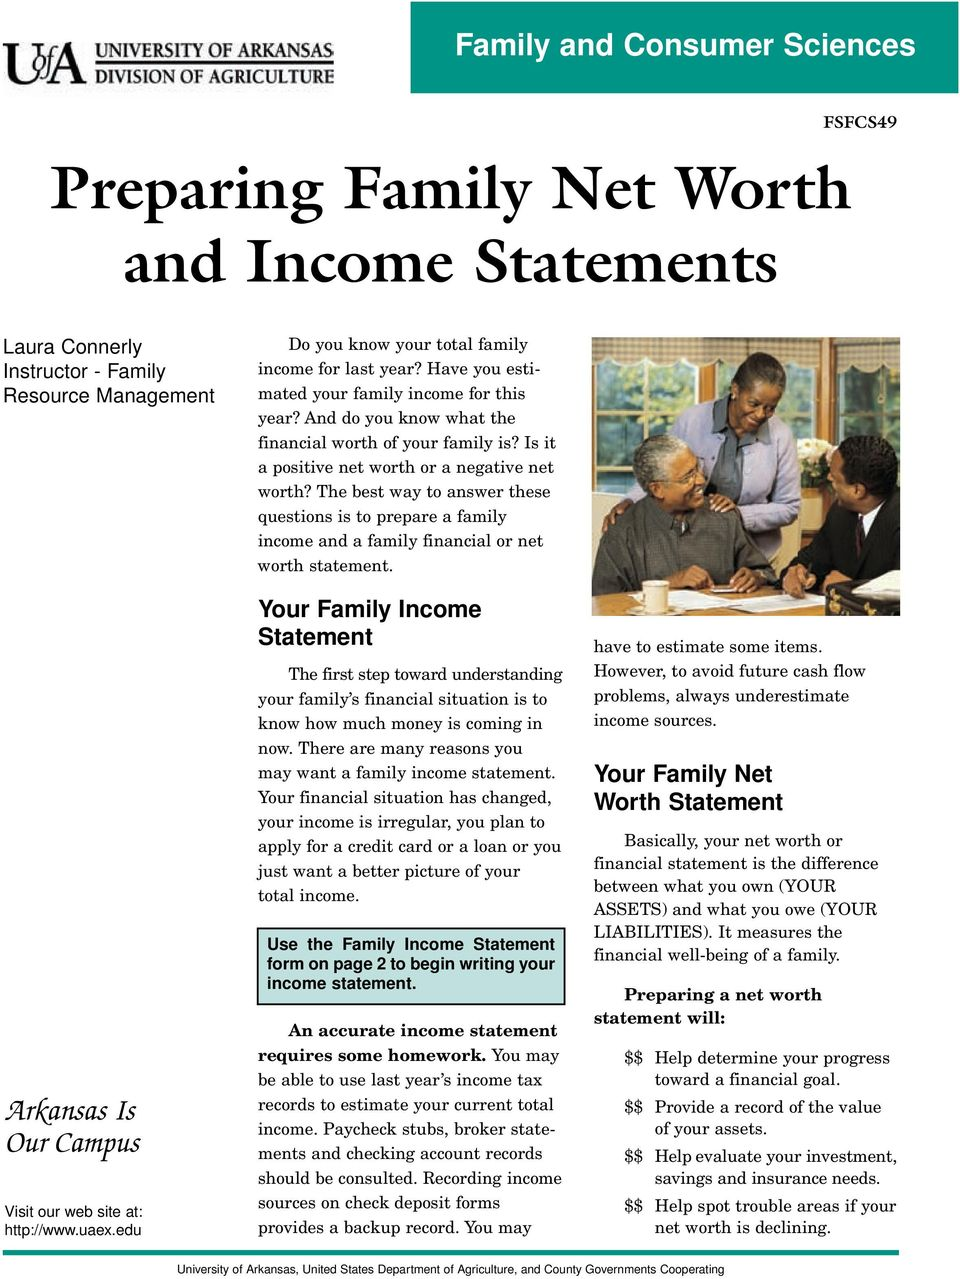 Is it a positive net worth or a negative net worth? The best way to answer these questions is to prepare a family income and a family financial or net worth statement.